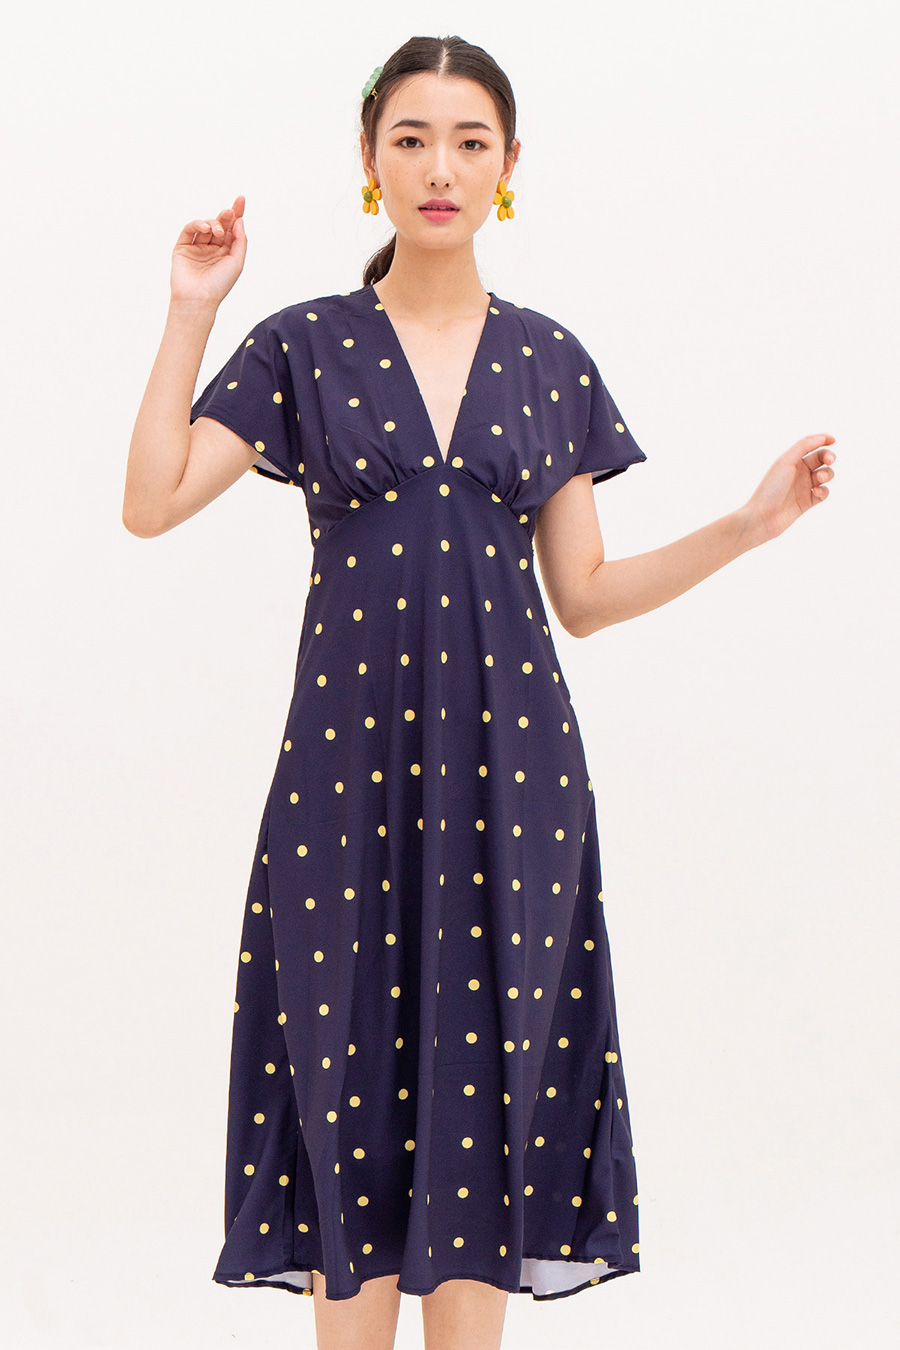 *RESTOCKED* BASHO DRESS - MIDNIGHT DOTTY